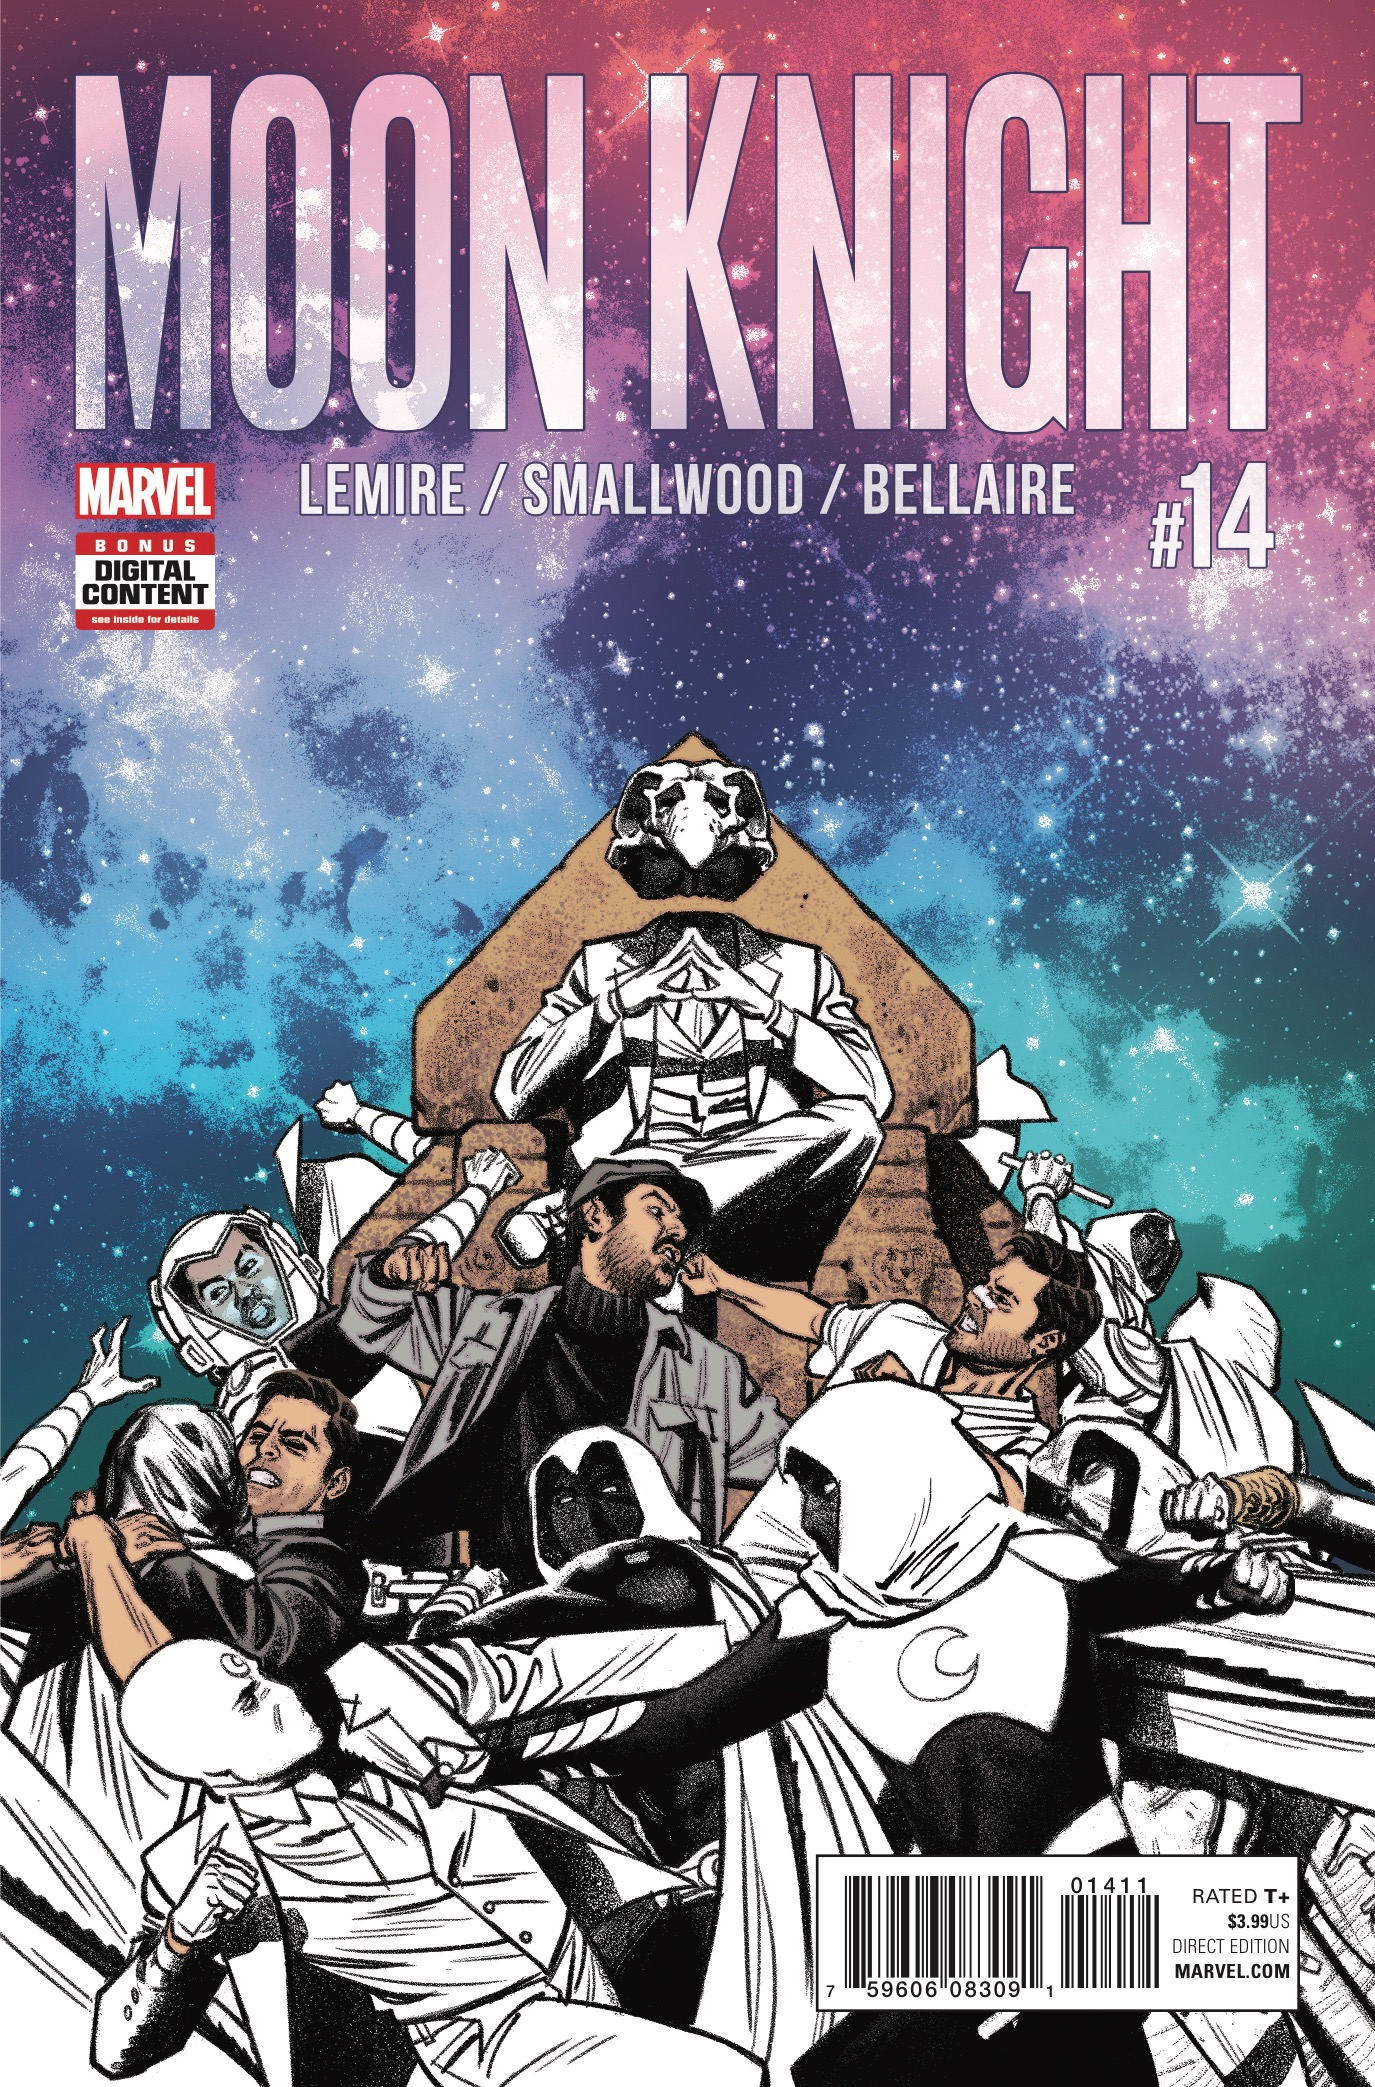 Moon Knight #14 Review